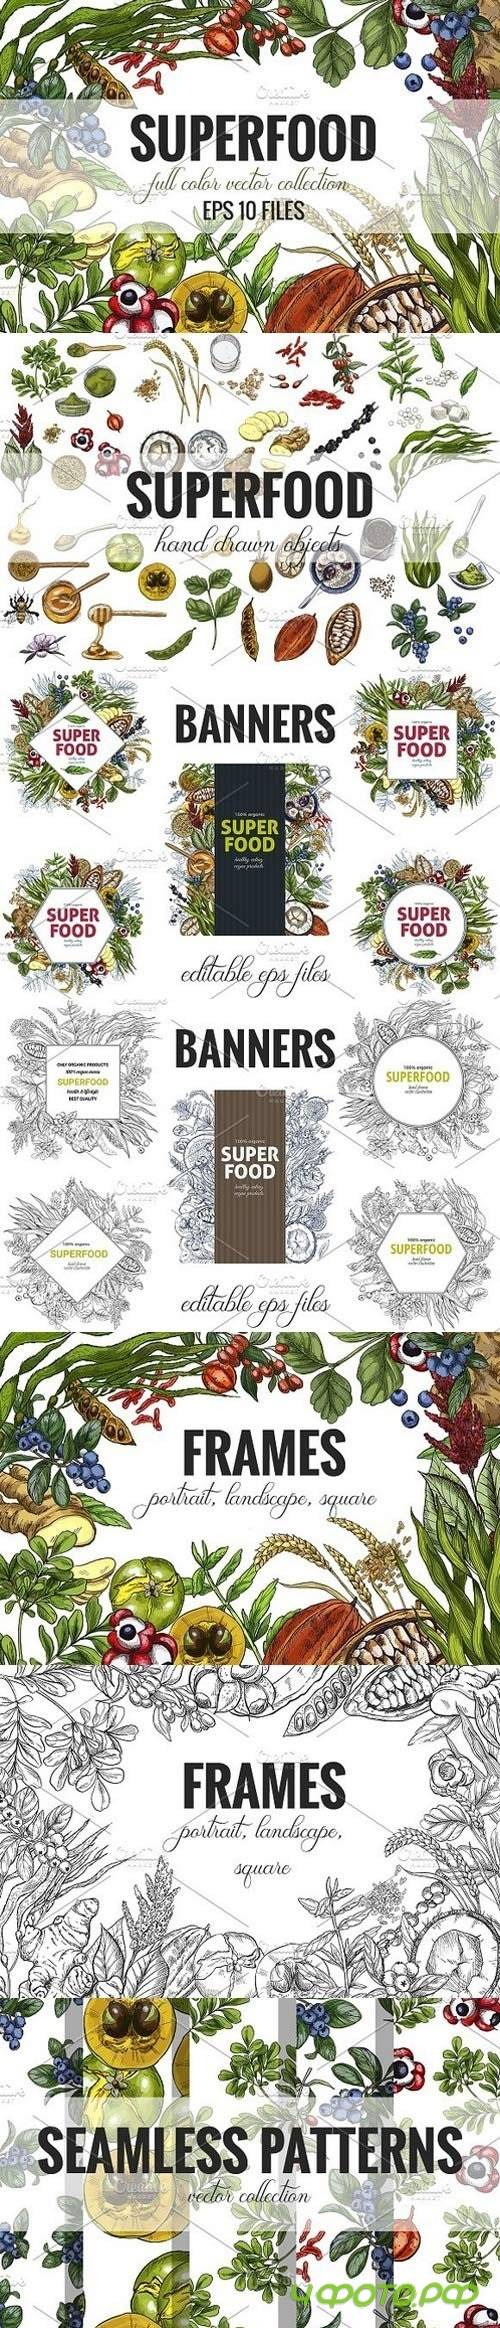 Superfood, vector collection 1730152